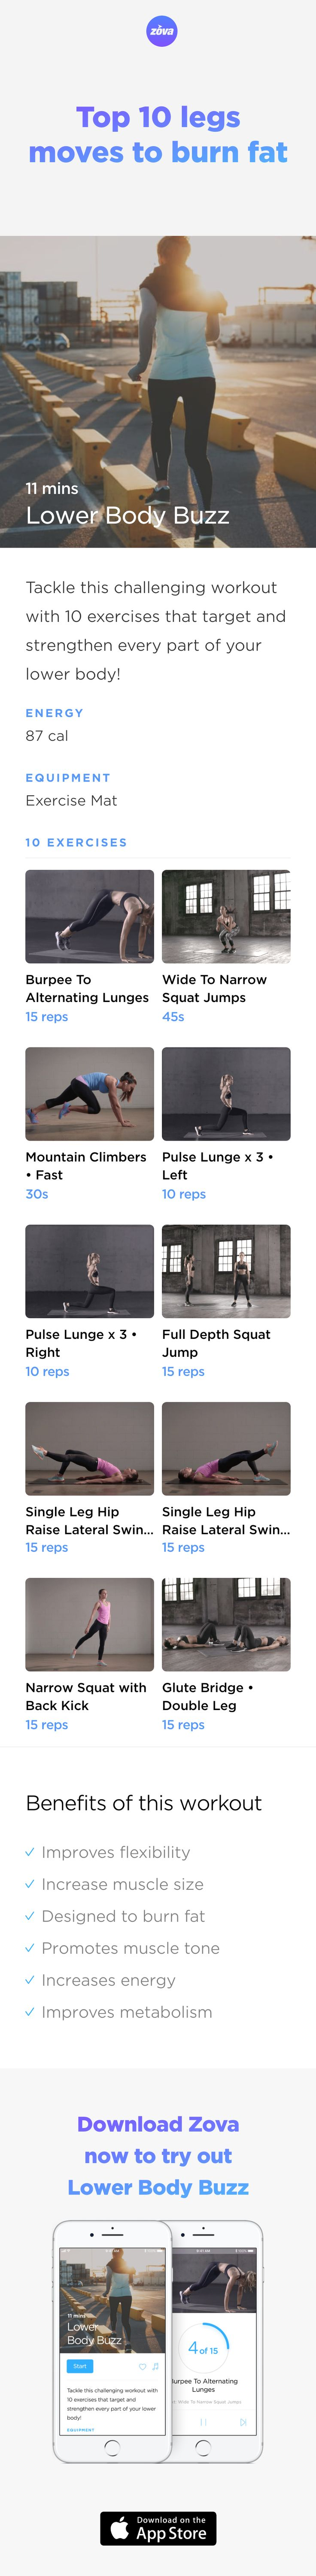 It's time to wear that mini skirt with confidence this summer! These quick and easy moves will help create a more athletic look for your legs in less than 10 minutes. The cardio boost will also increase your energy, motivation and self confidence. Bring on the hot weather! #legs #butt #workout #fitness #HIIT #fullbody #sweat #strength #bodyweight